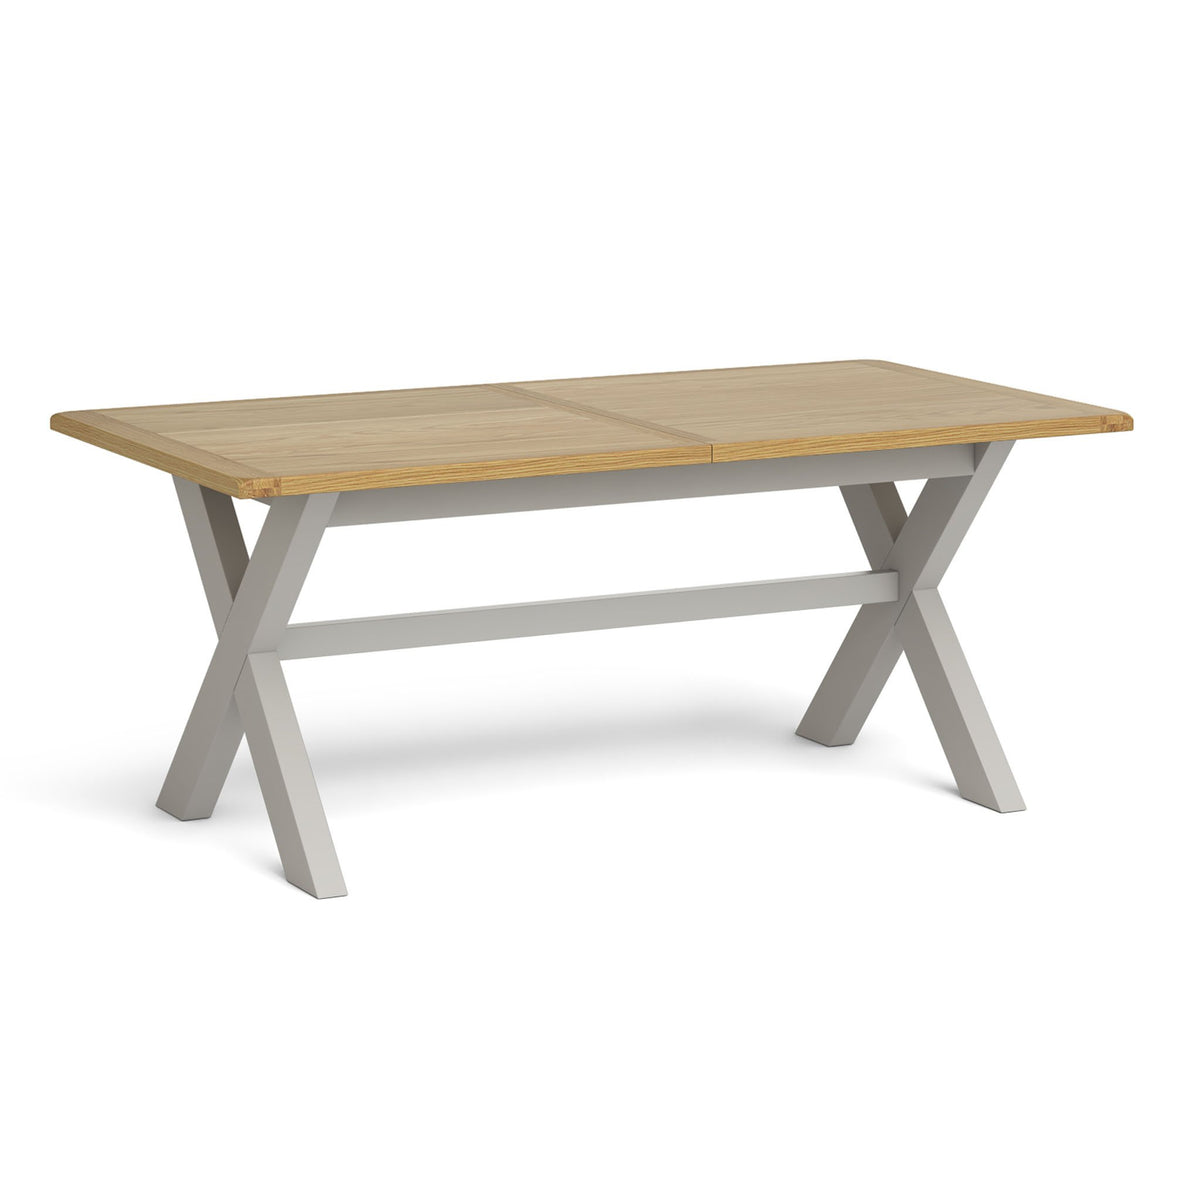 Lundy Grey Cross legged Extending Dining Table with Oak Top by Roseland Furniture